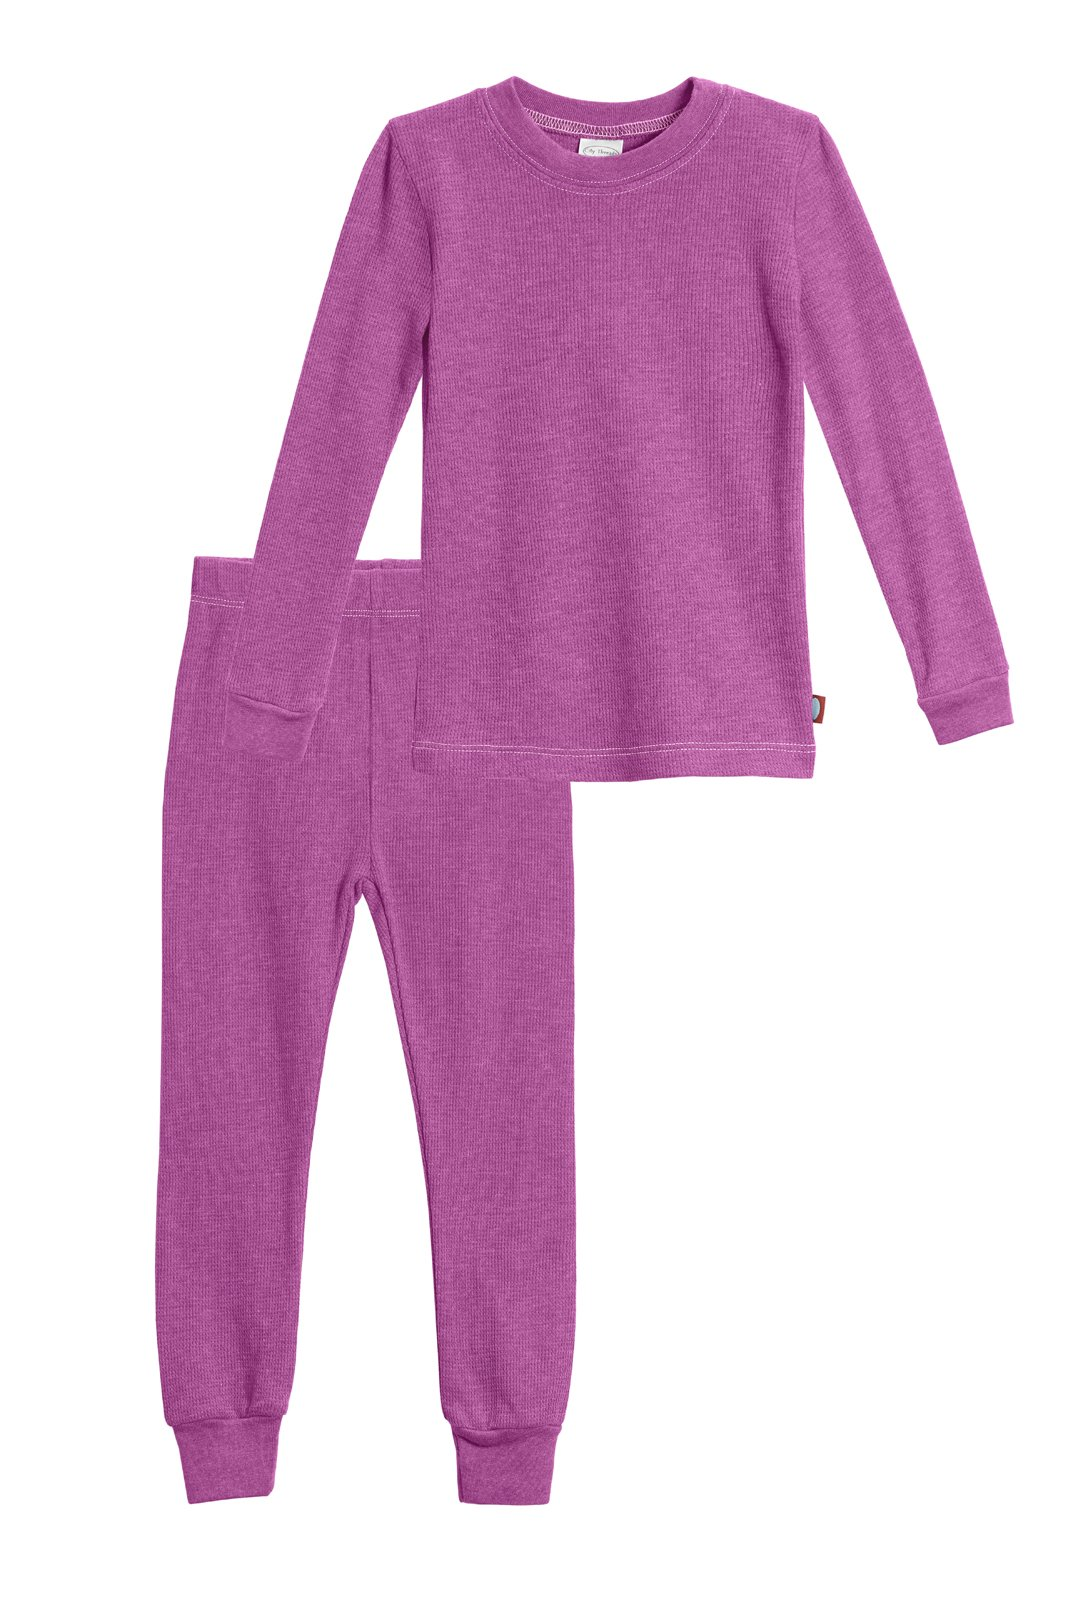 City Threads Little Girls Thermal Underwear Set Perfect for Sensitive Skin SPD Sensory Friendly,Plum, 4 by City Threads